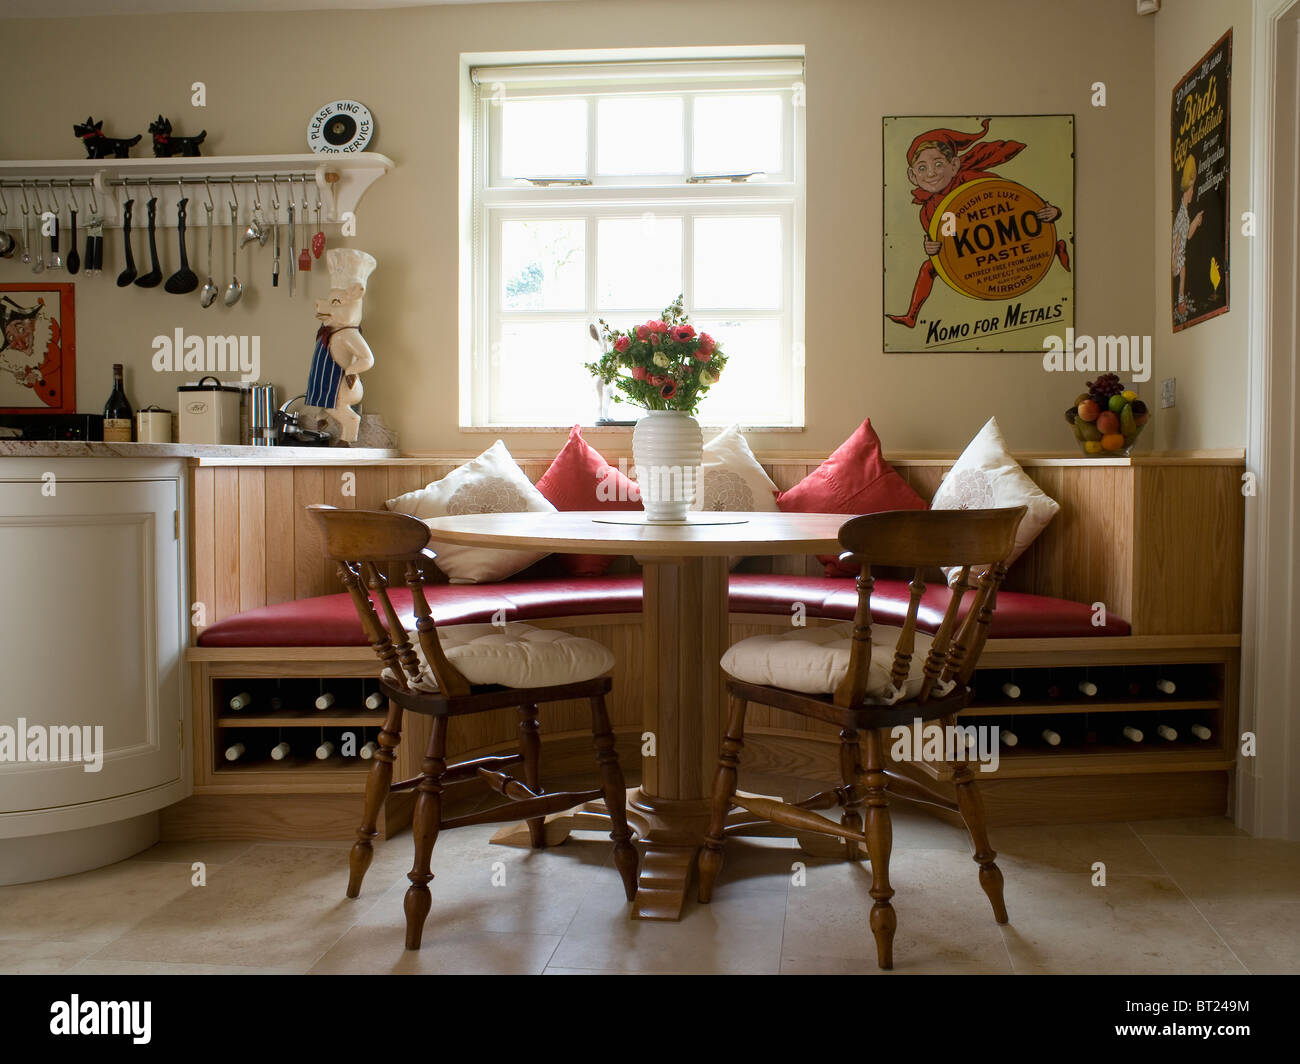 banquette dining room furniture. Circular Table And Old Wooden Chairs In Kitchen Dining Room With Fitted Banquette Seating Furniture E